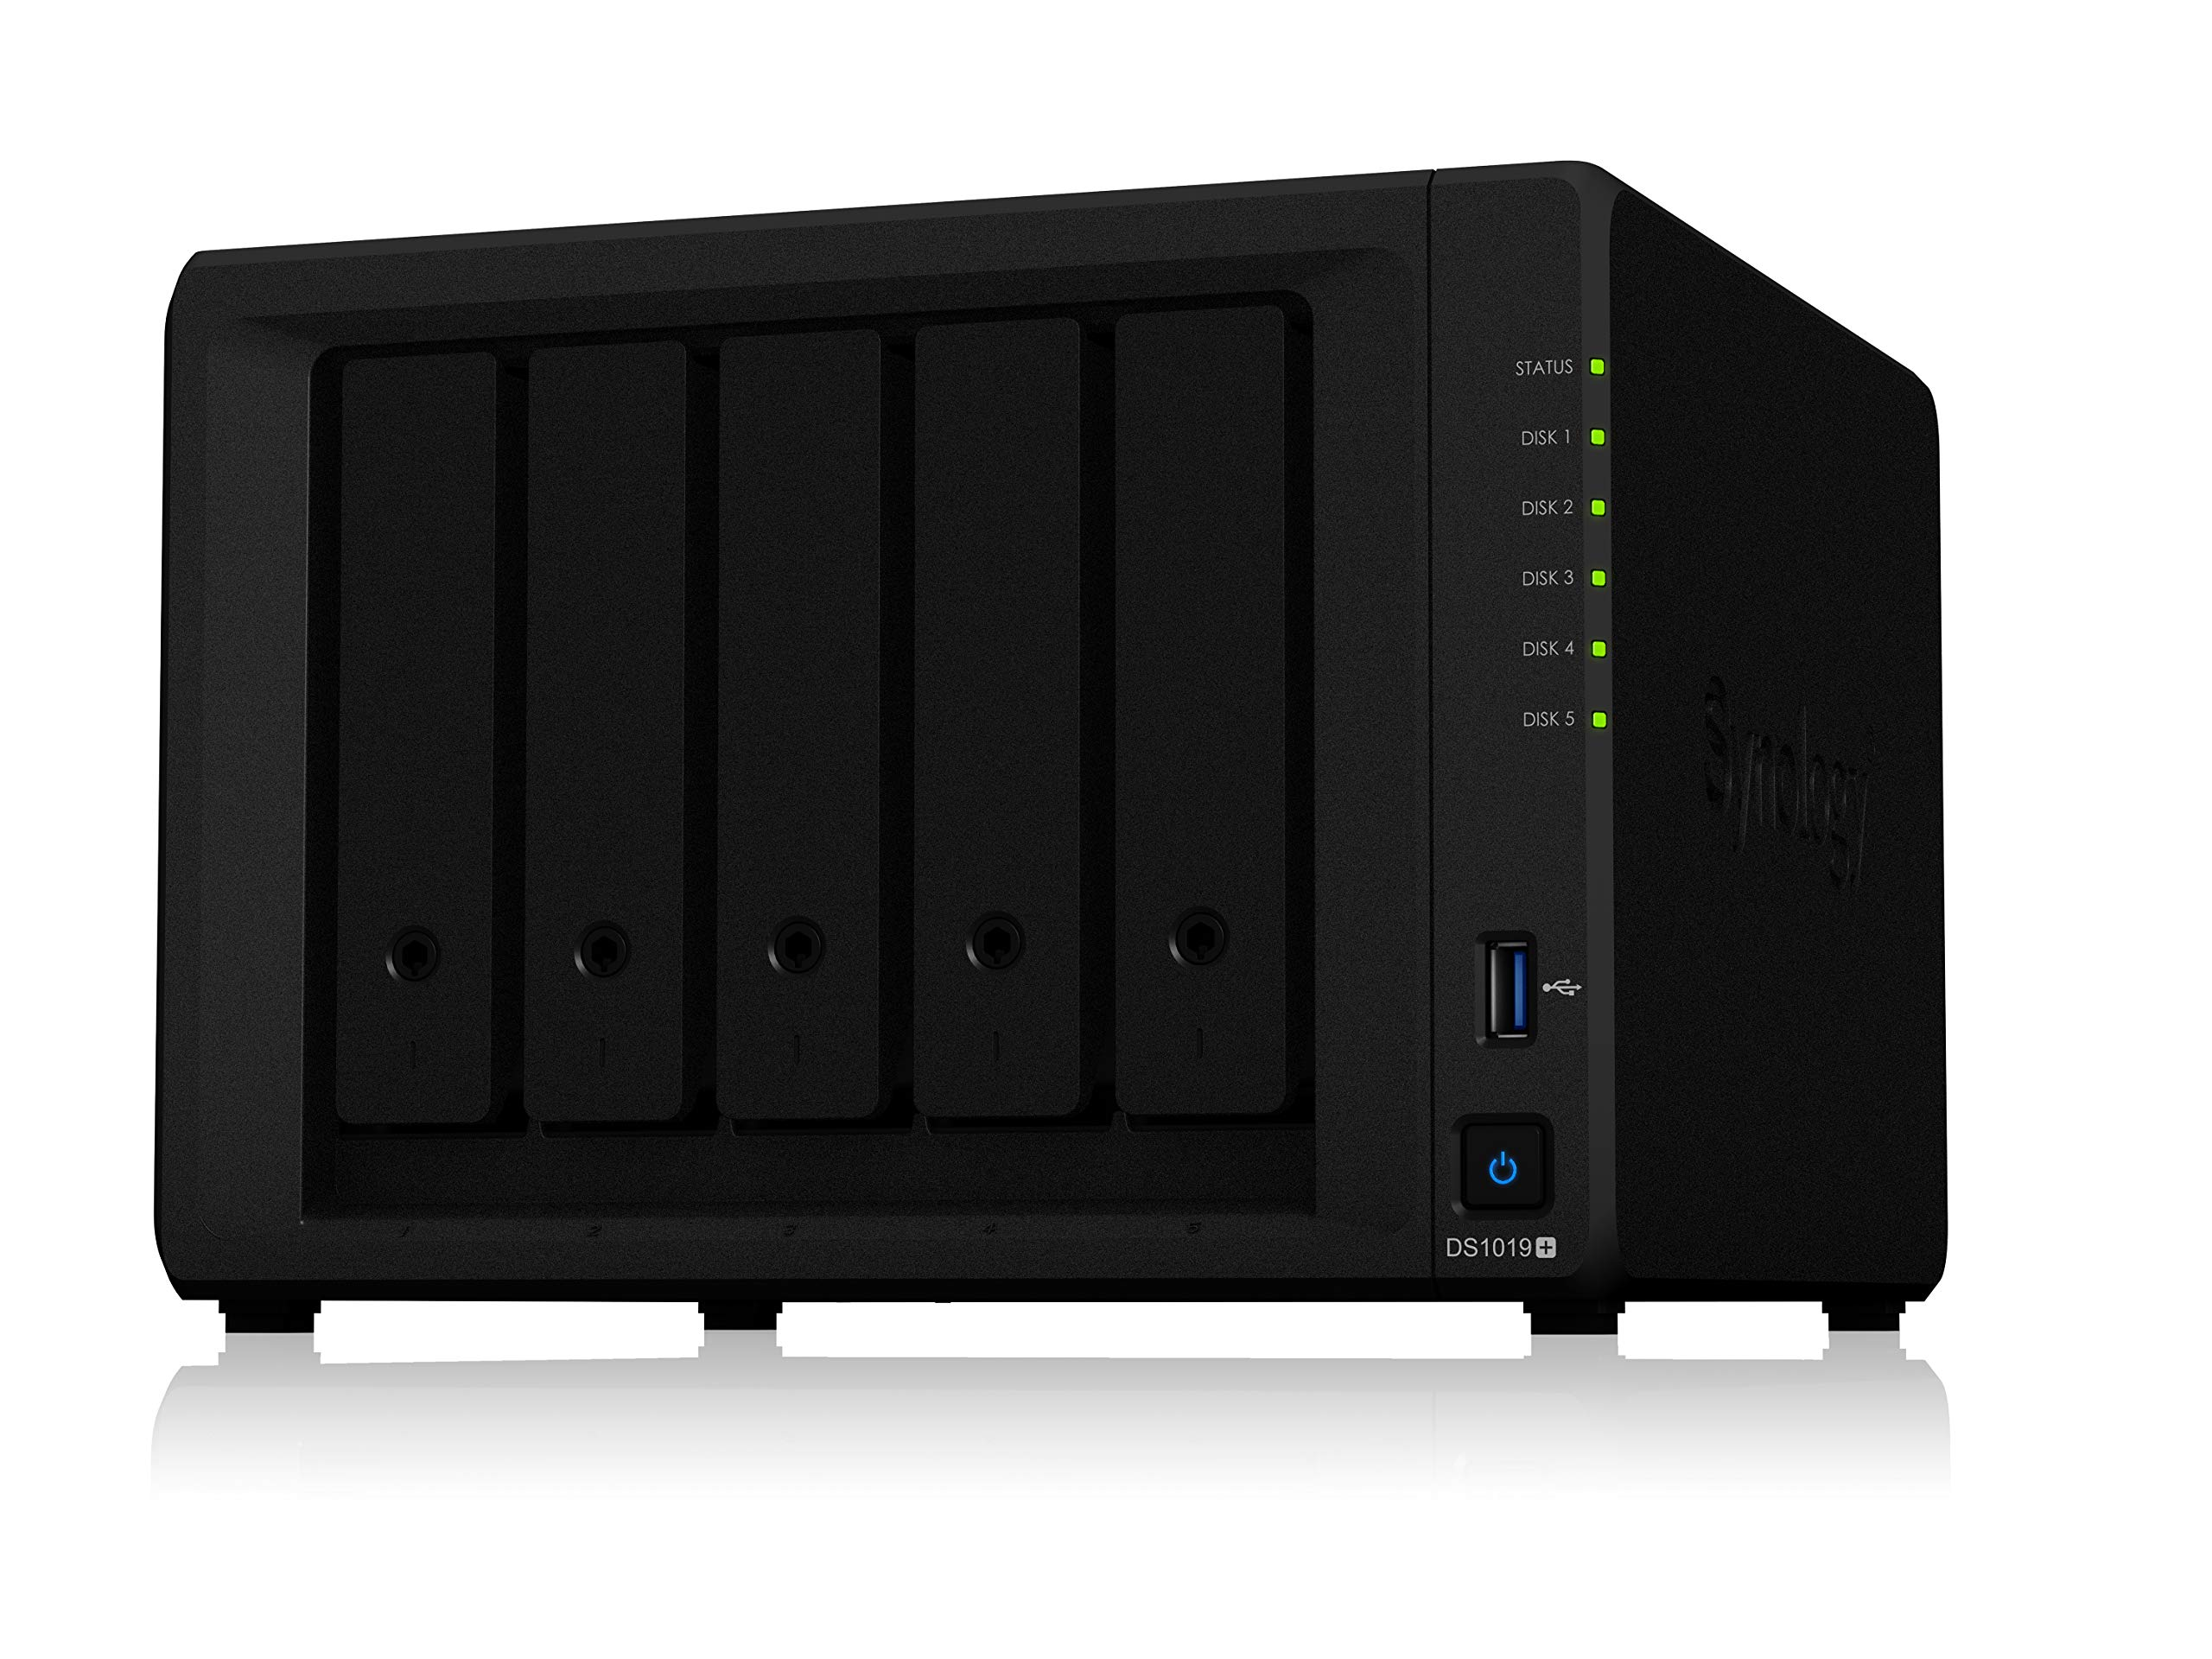 Synology 5 Bay NAS DiskStation DS1019+ (Diskless) by Synology